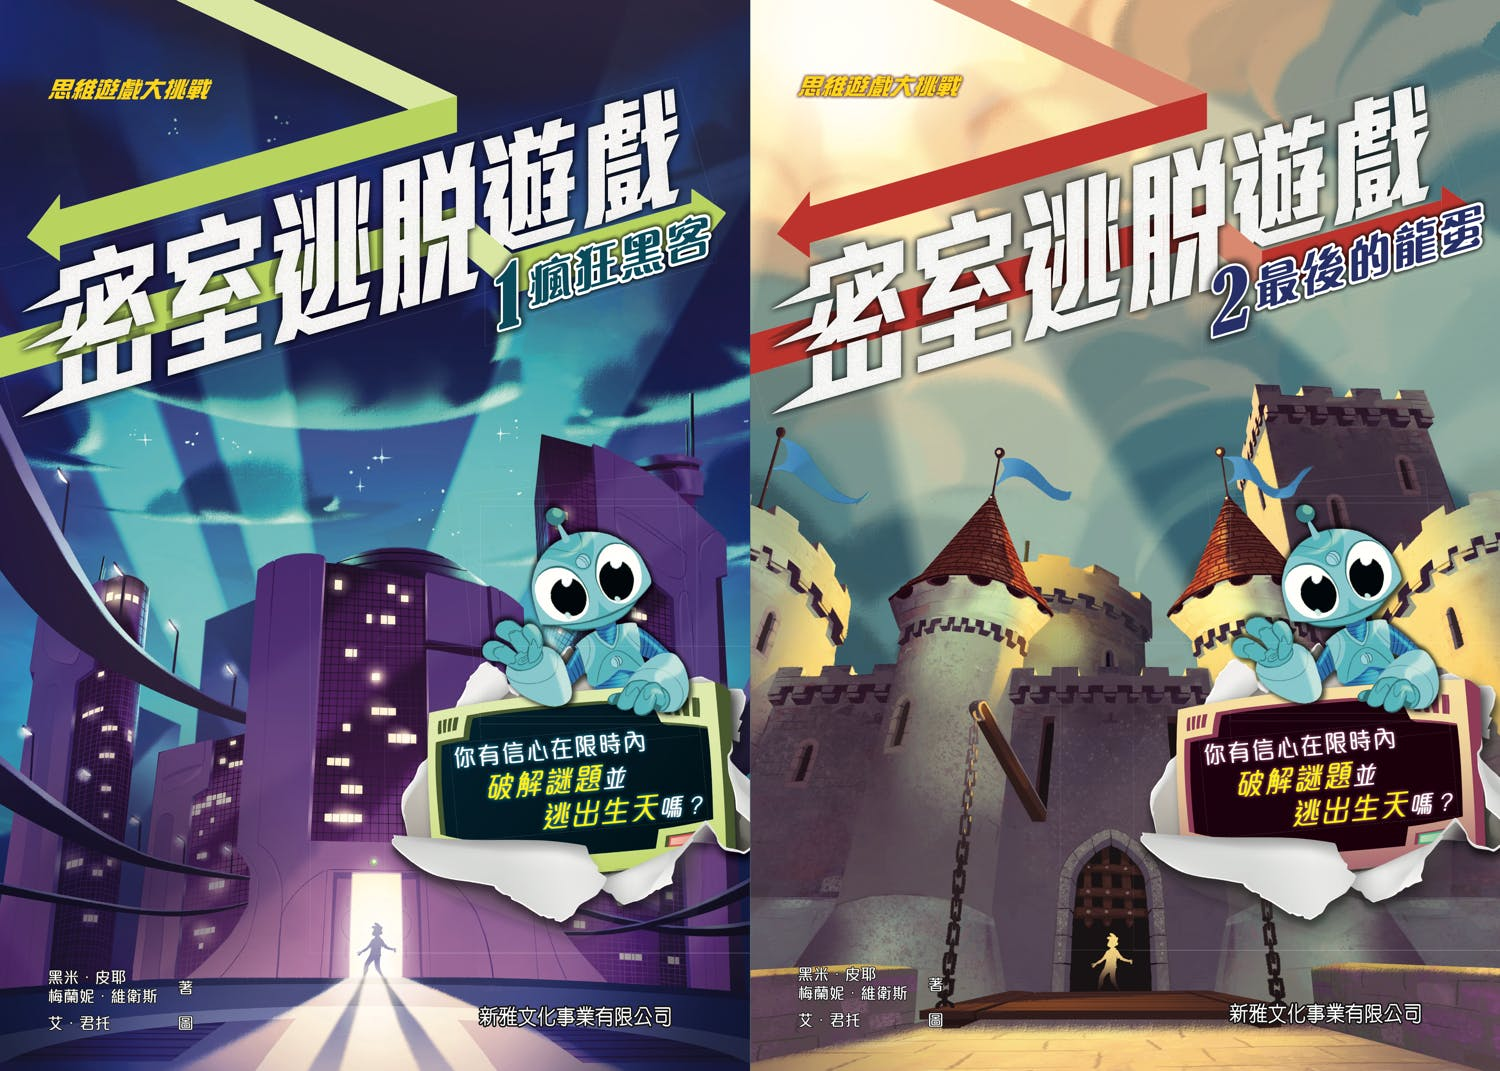 couvertures des livres Escape Game Junior en chinois traditionnel